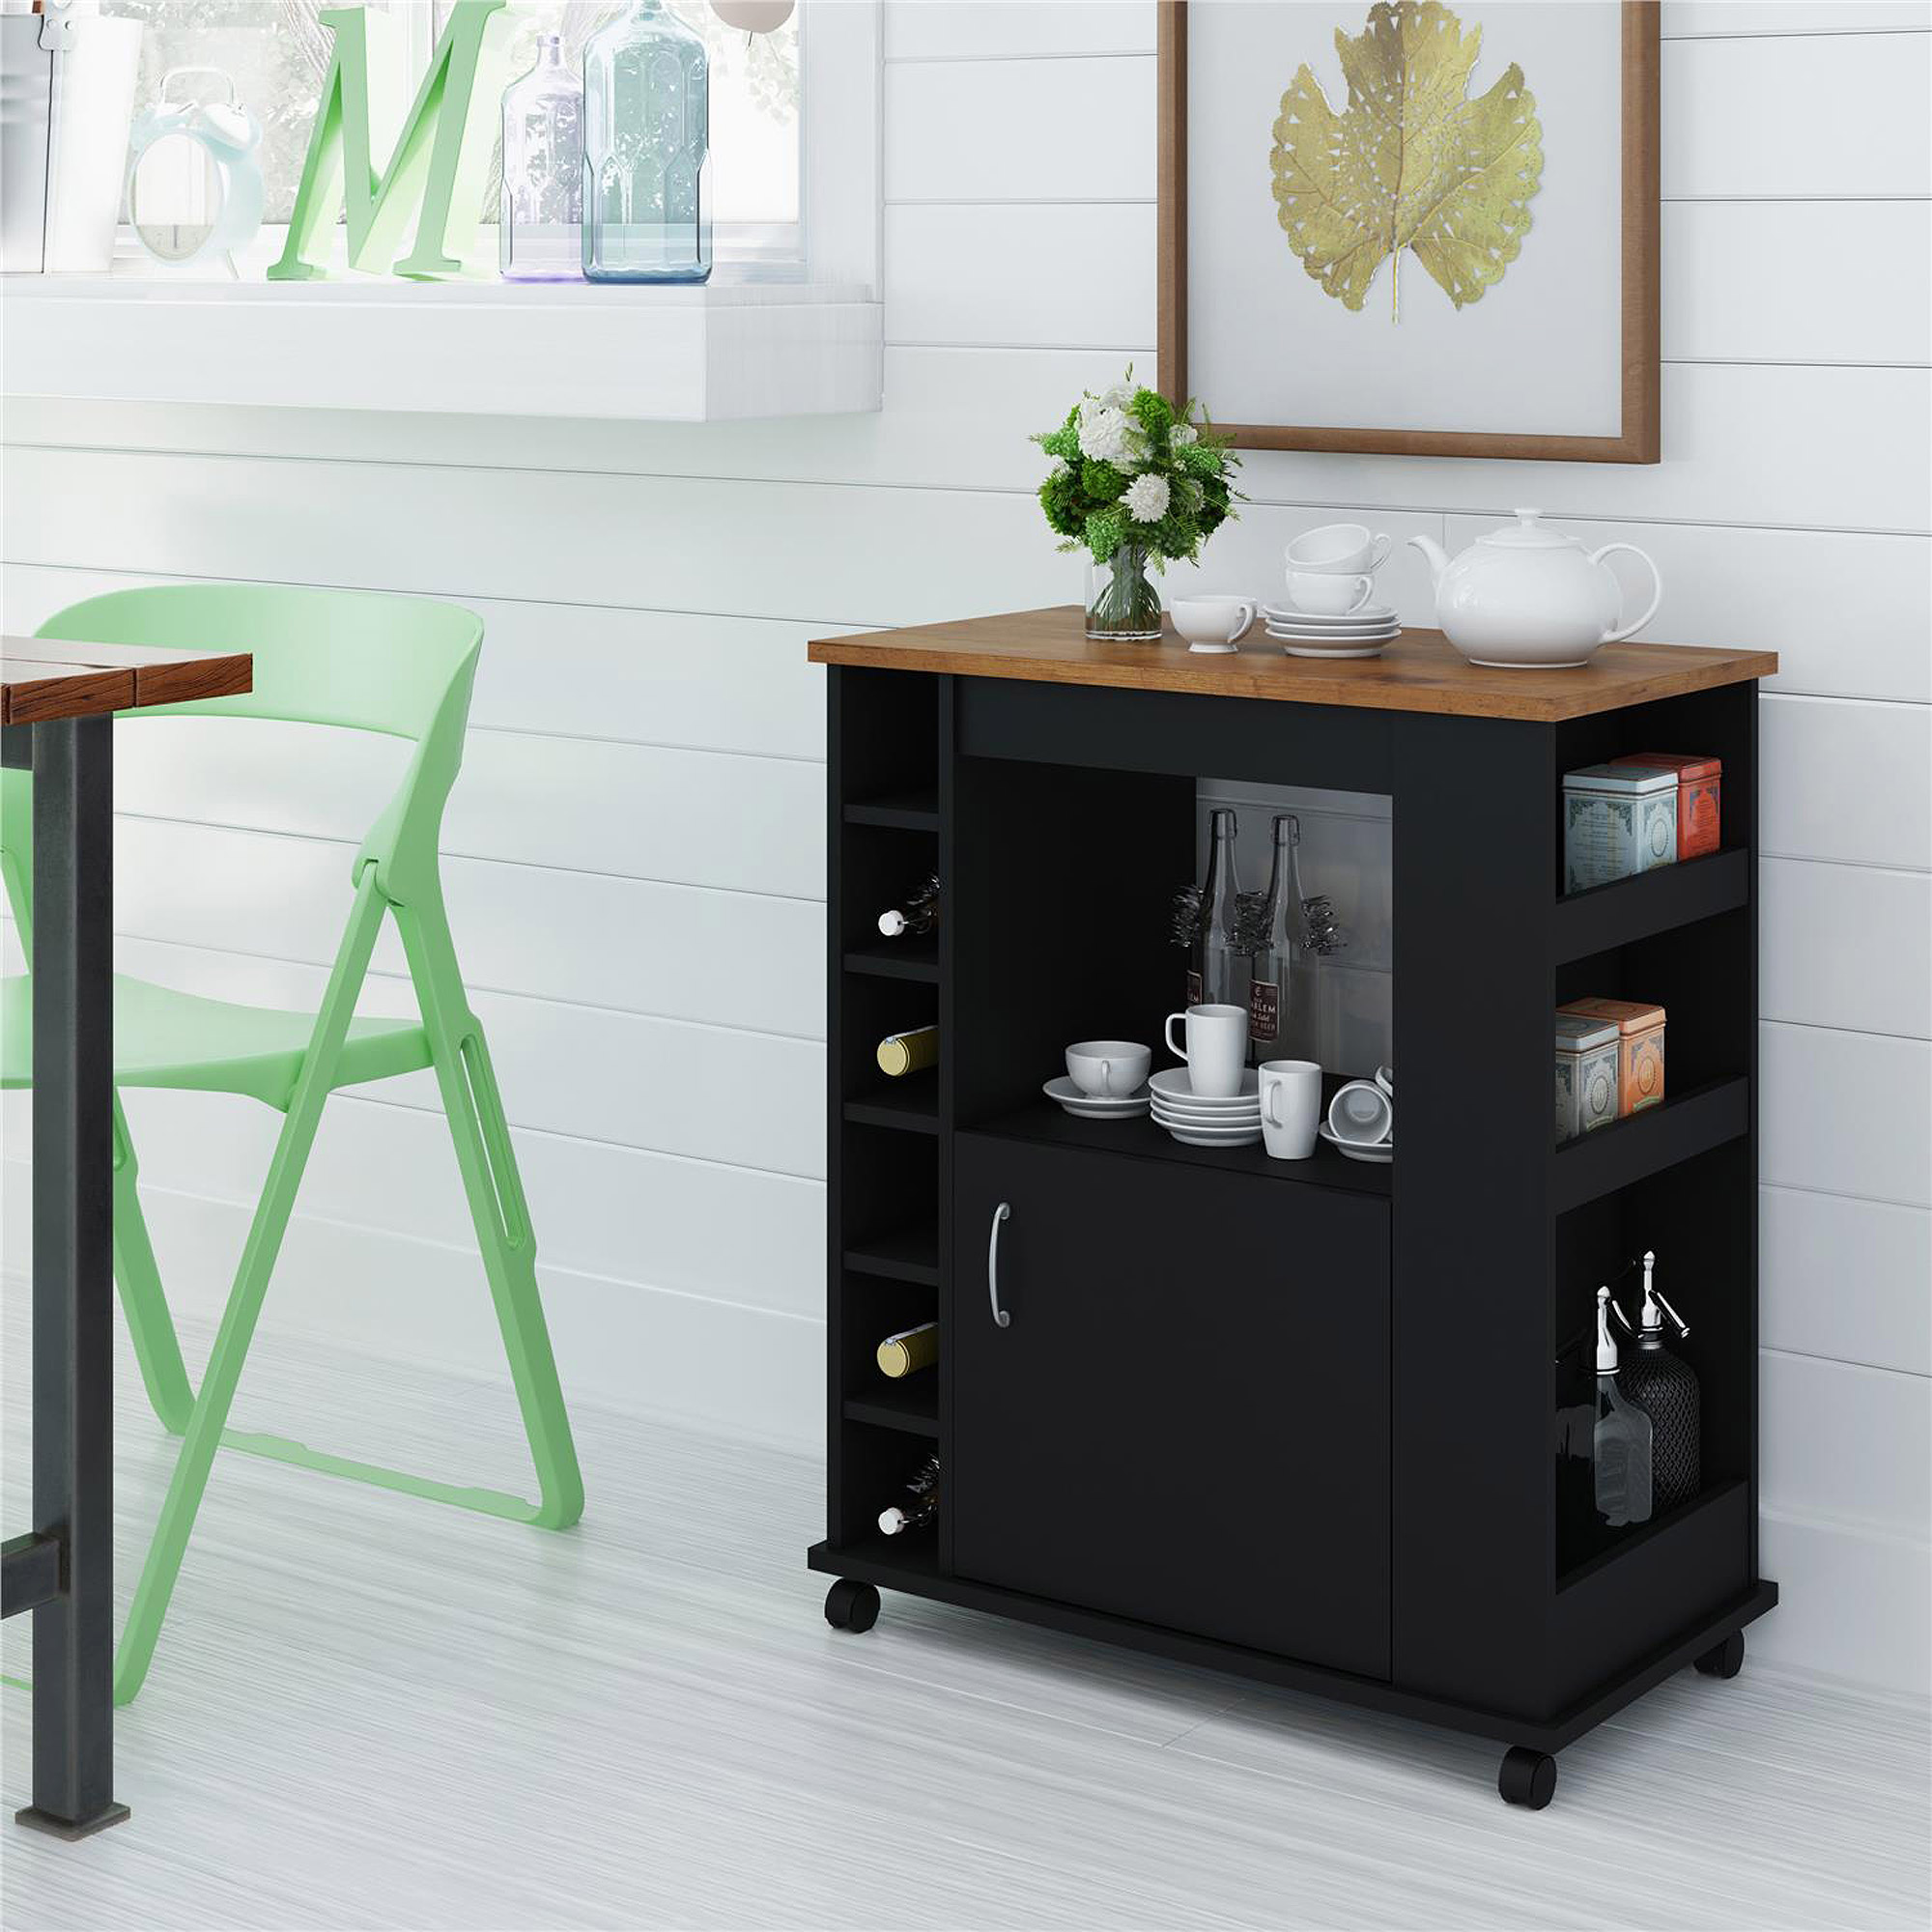 Ameriwood Home Williams Kitchen Cart, Black/Old Fashioned Pine